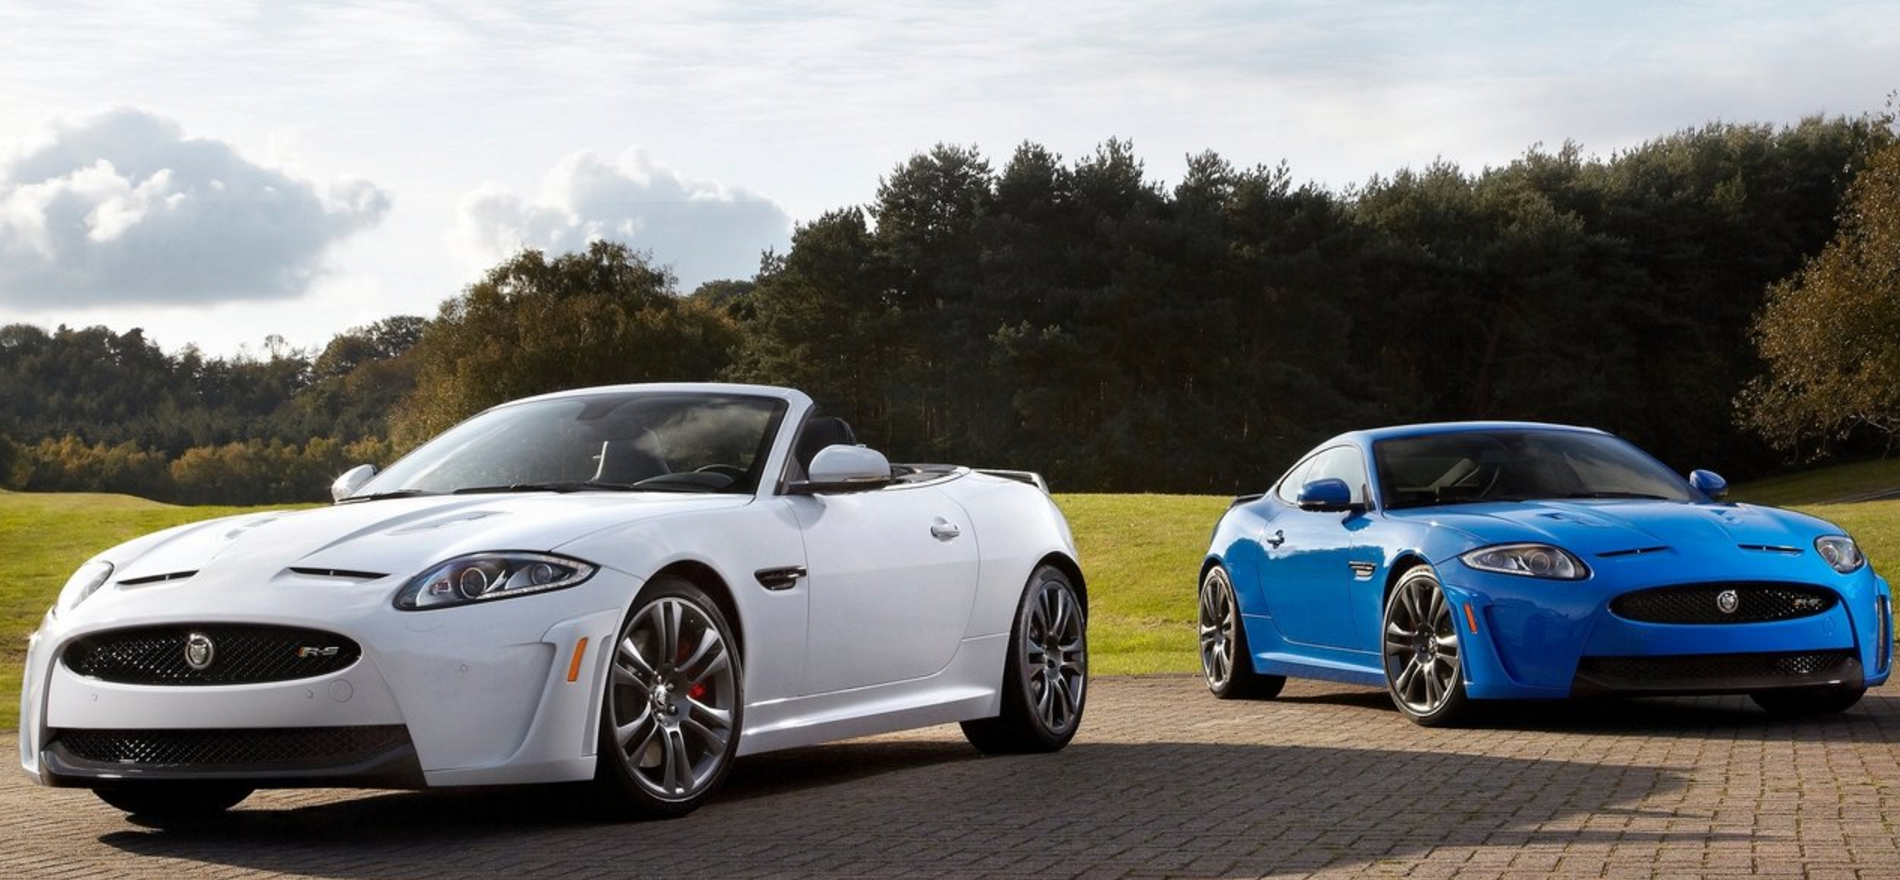 Jaguar Xf Review Bmw And Mercedes Have A Serious British